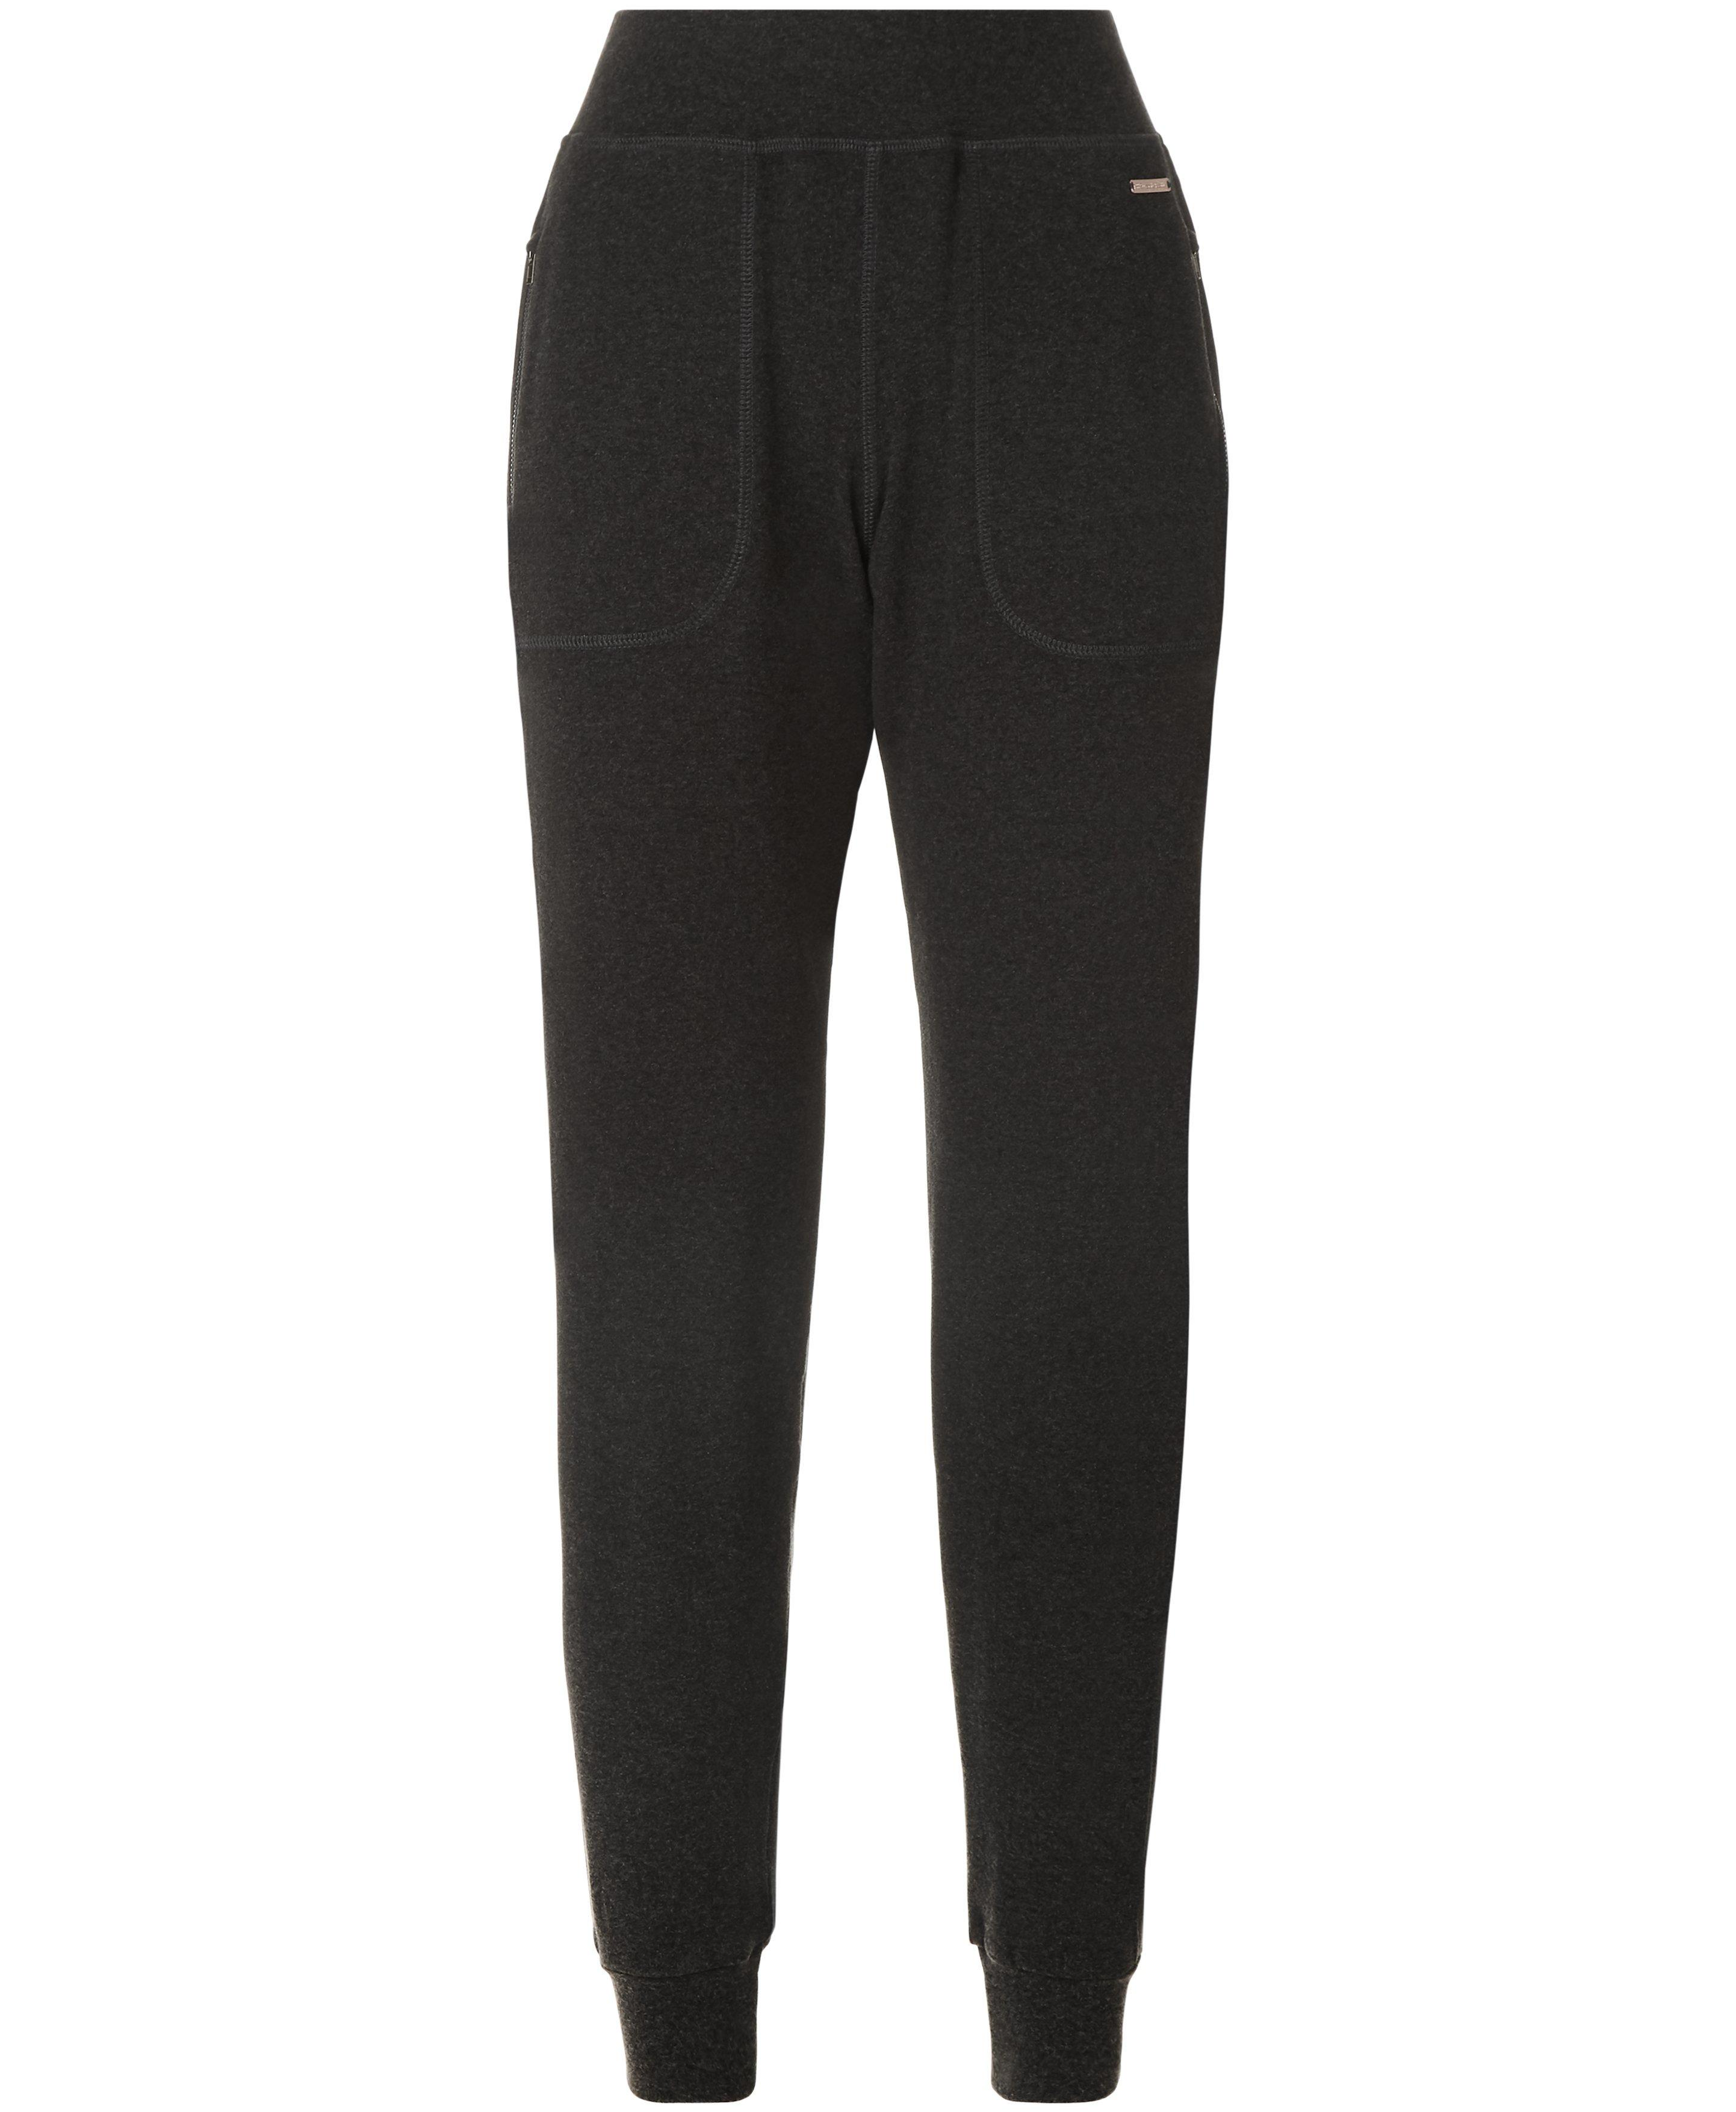 luxe liberty trousers